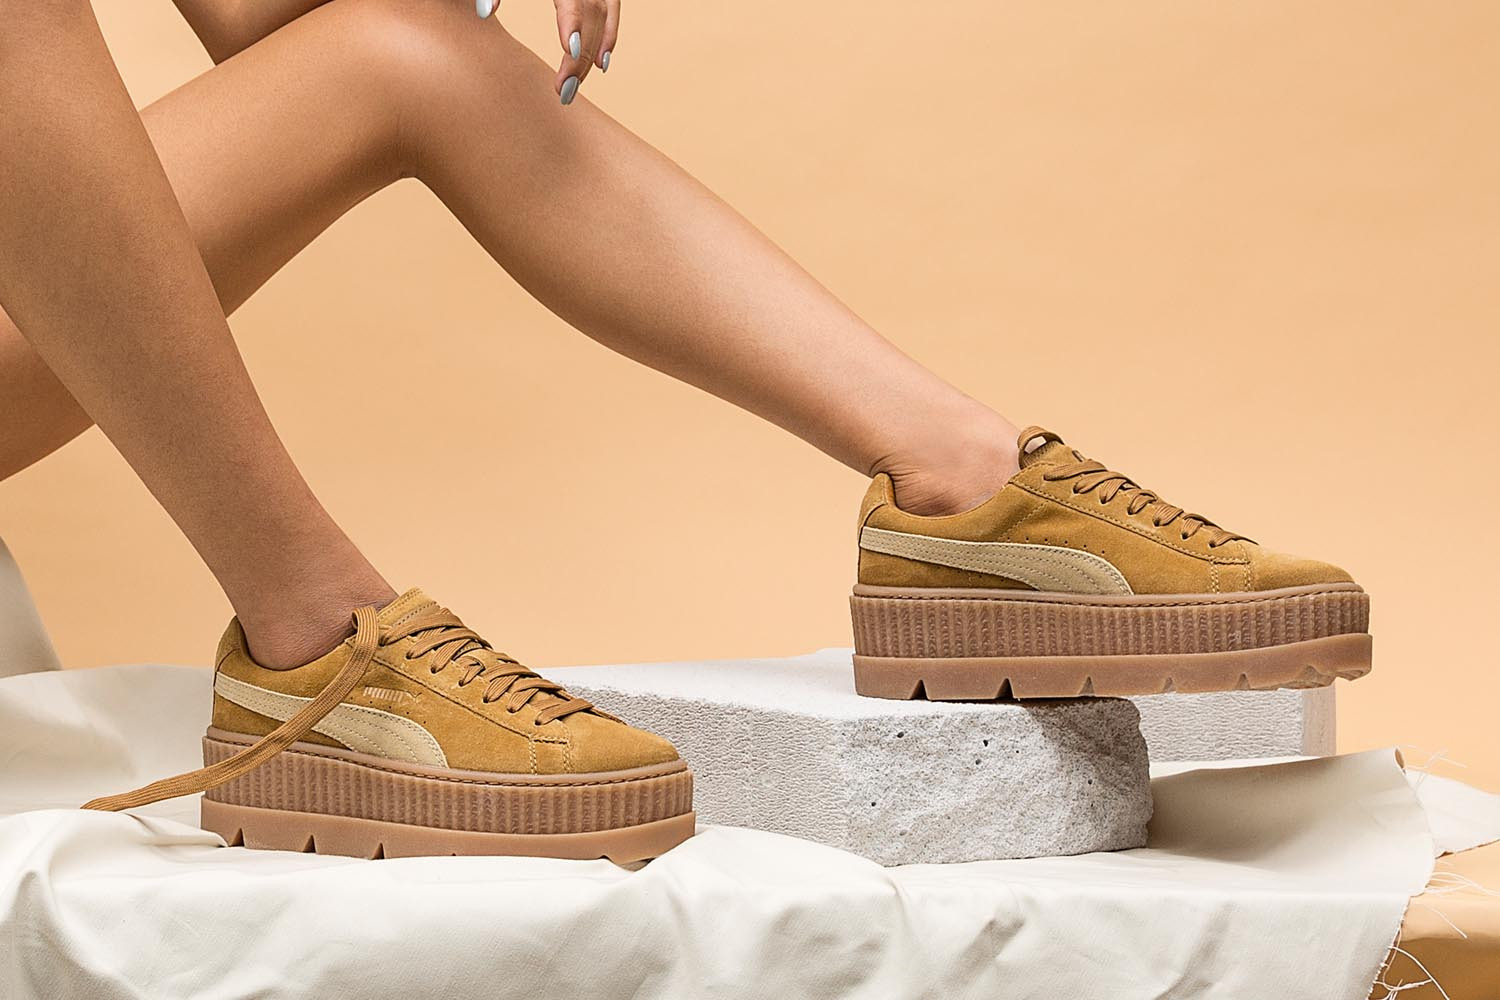 free shipping 29a41 4ef1f Rihanna's FENTY x PUMA Cleated Creeper Is Here | HBX Journal